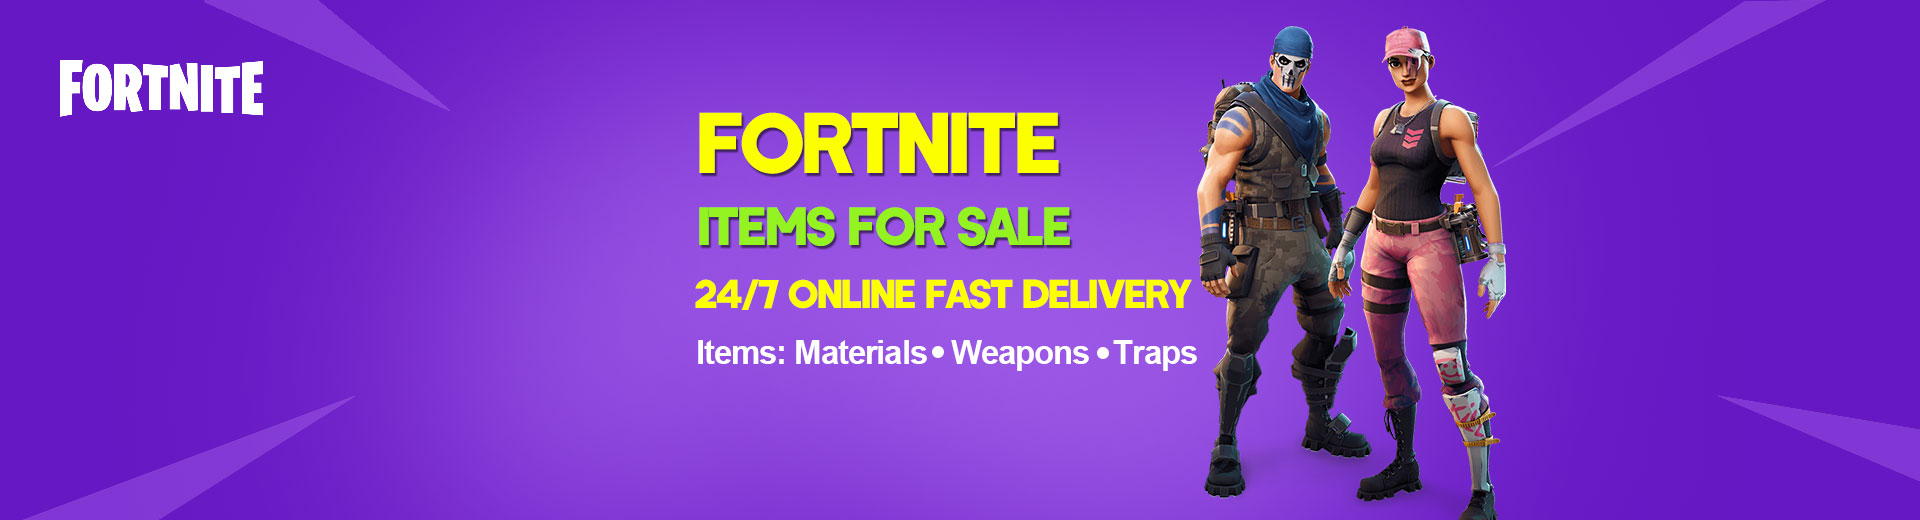 Buy Fortnite Items(Materials,Weapons,Traps)